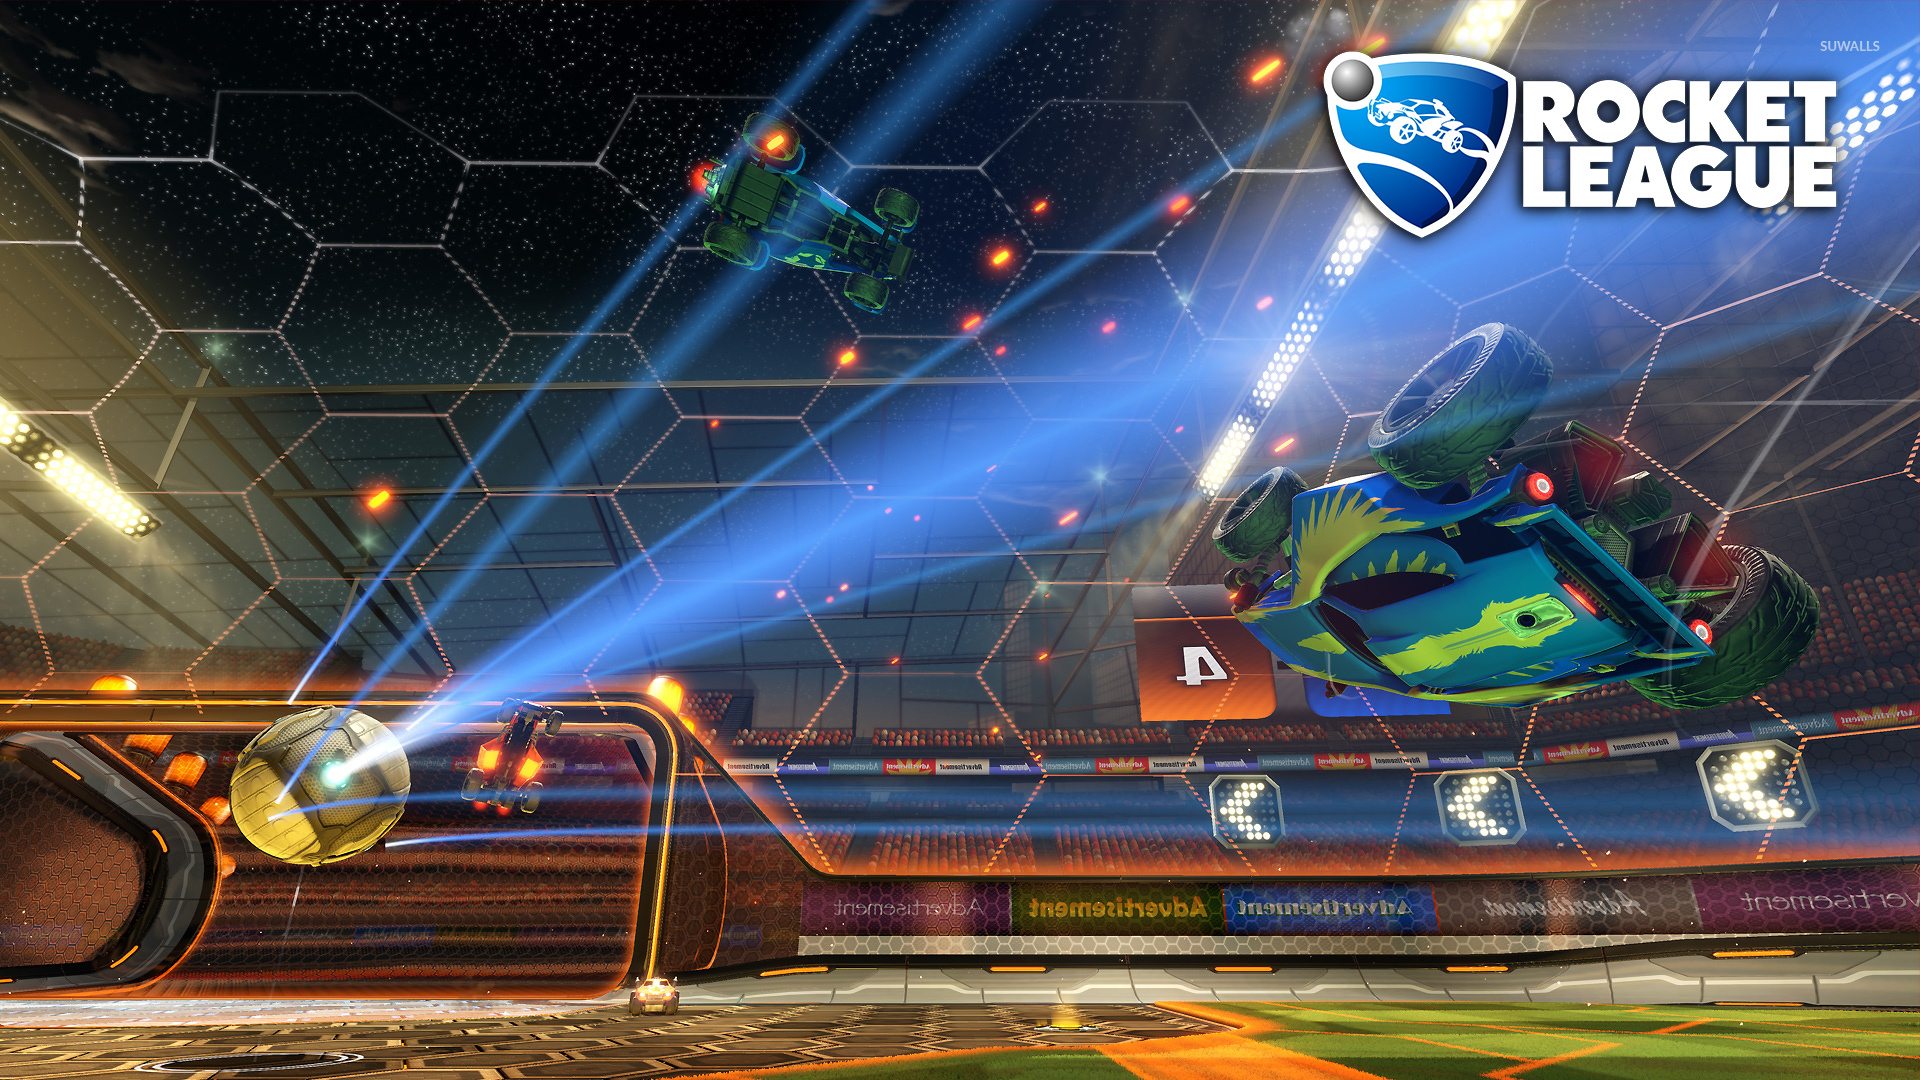 Car Exploding In Rocket League Wallpaper Game Wallpapers